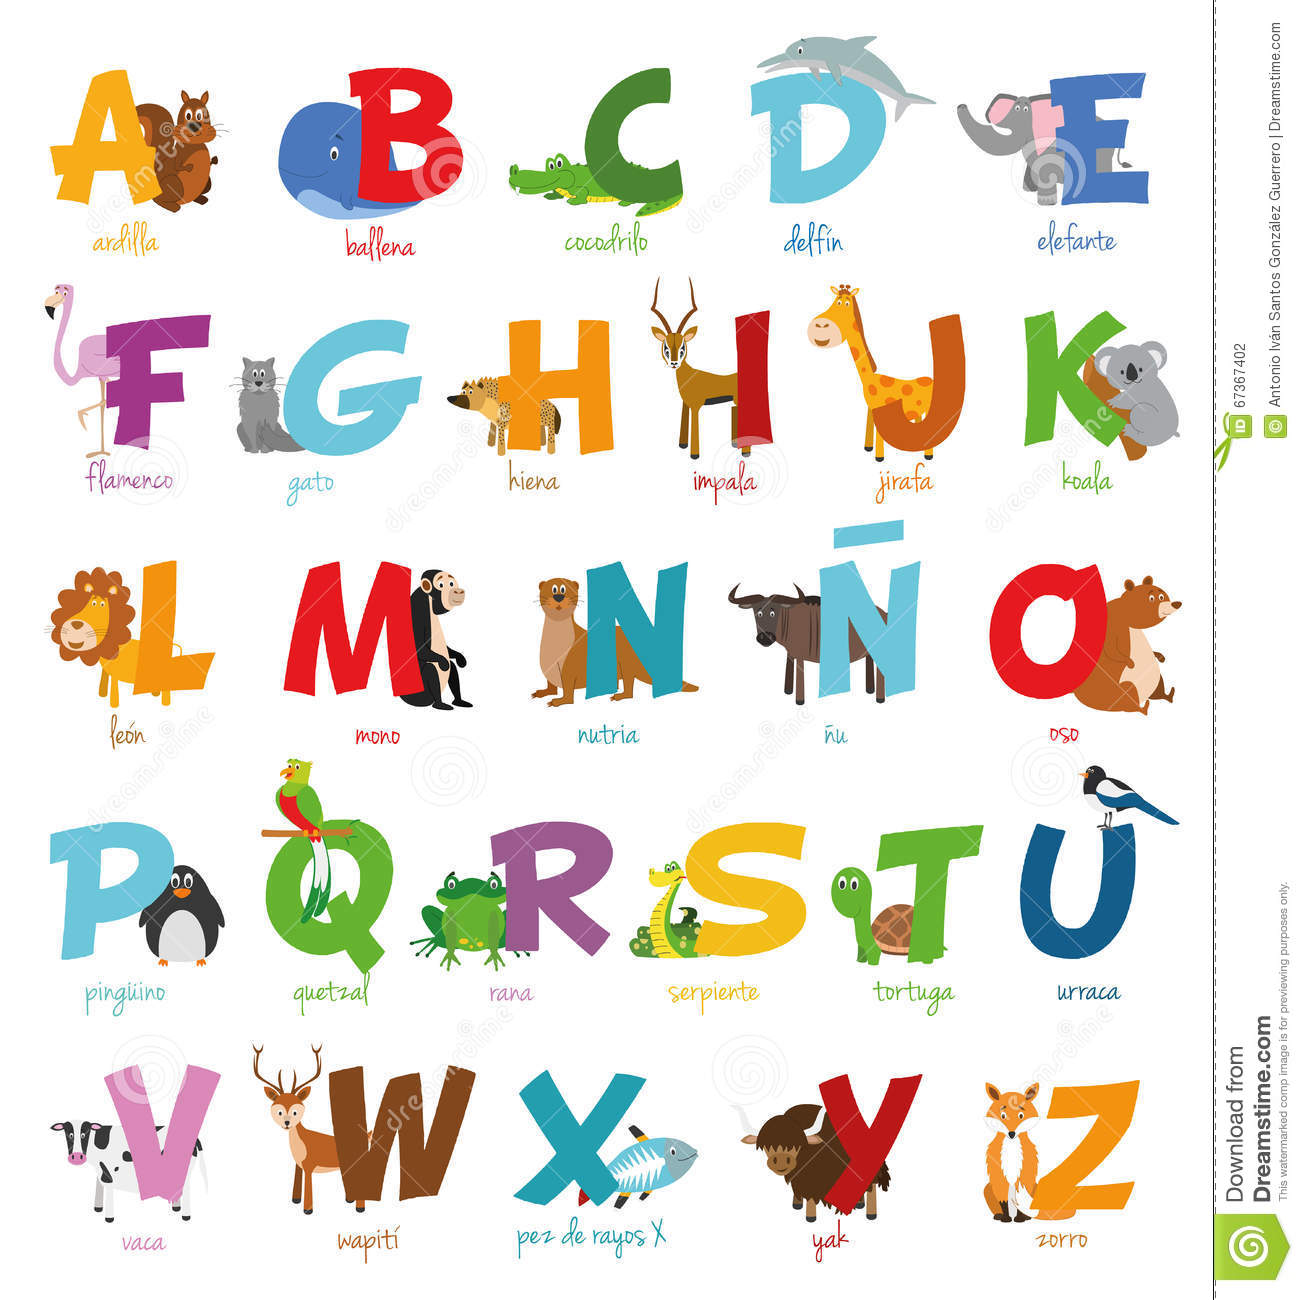 Cute Cartoon Zoo Illustrated Alphabet With Funny Animals. Spanish.